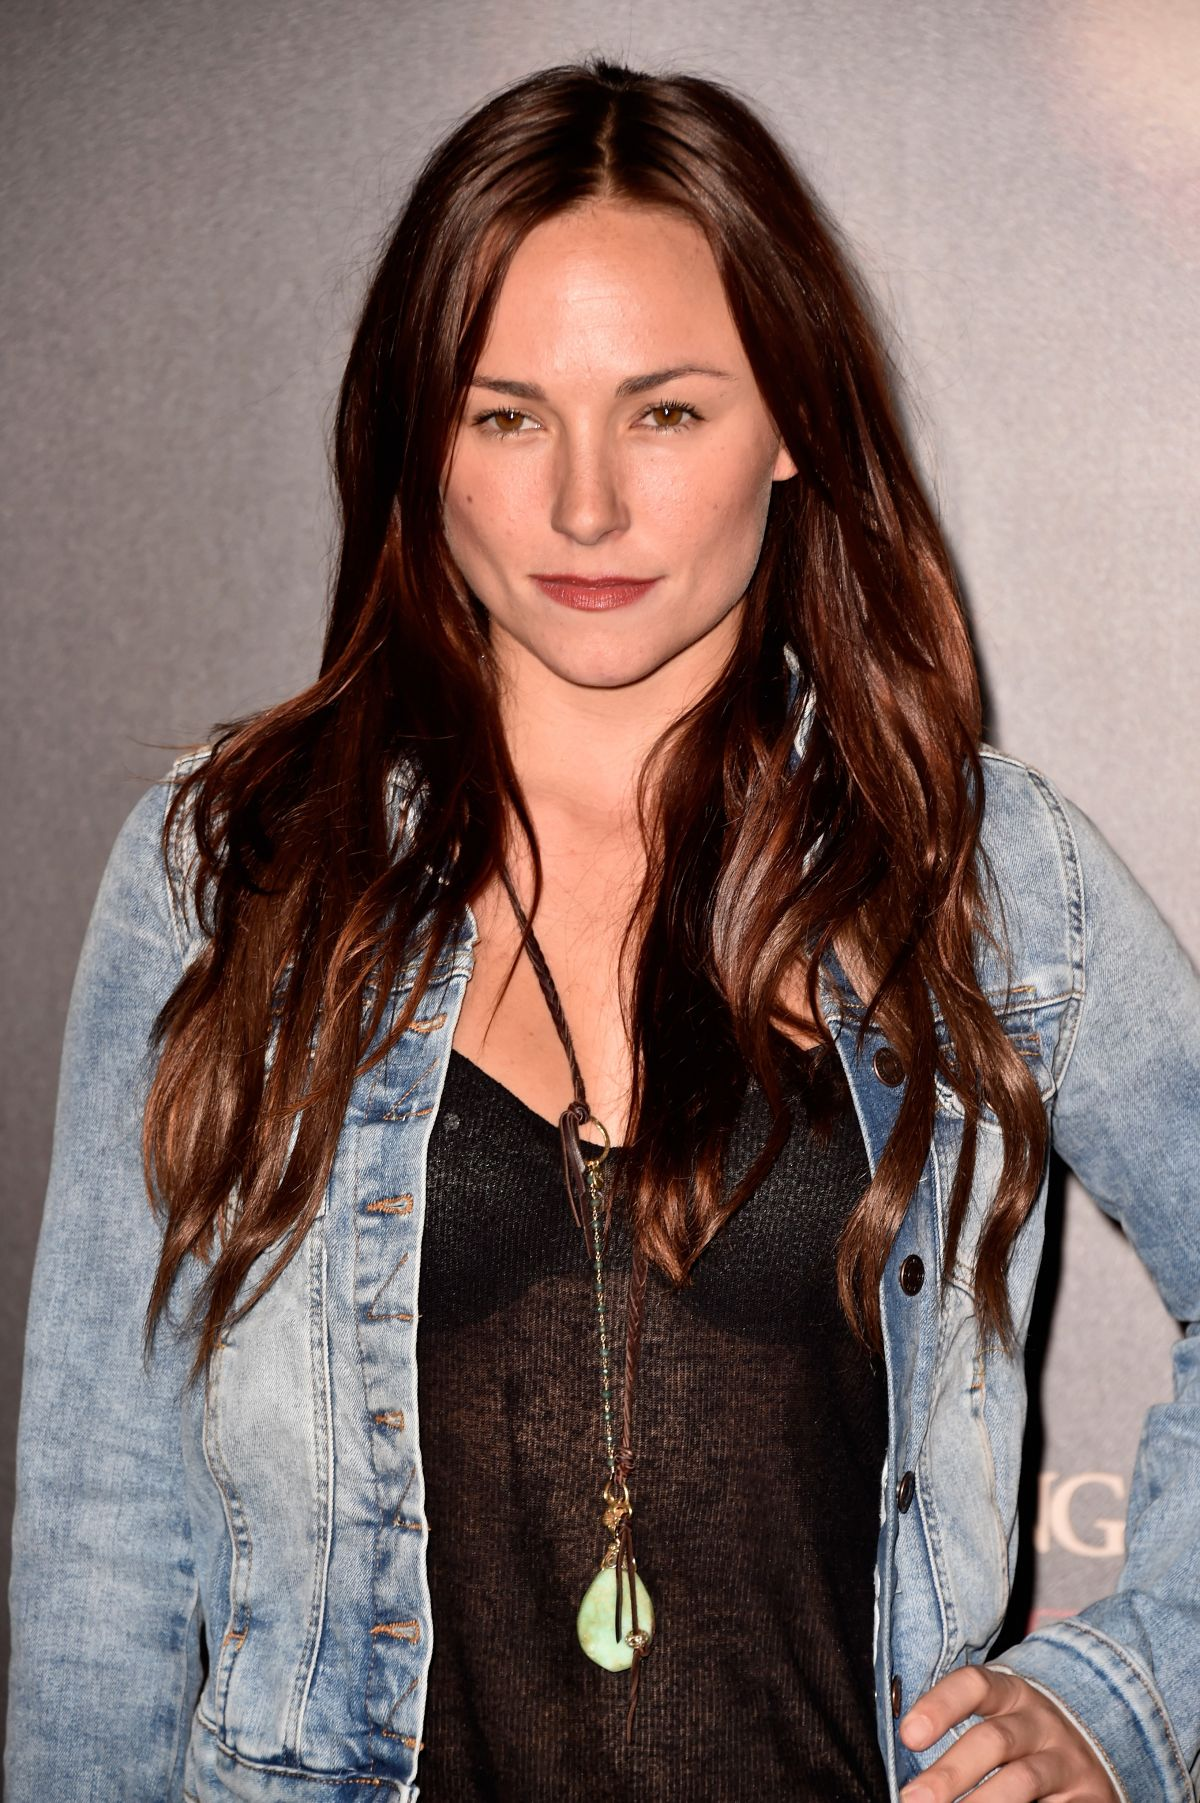 BRIANA EVIGAN at Annabelle Screening in Hollywood